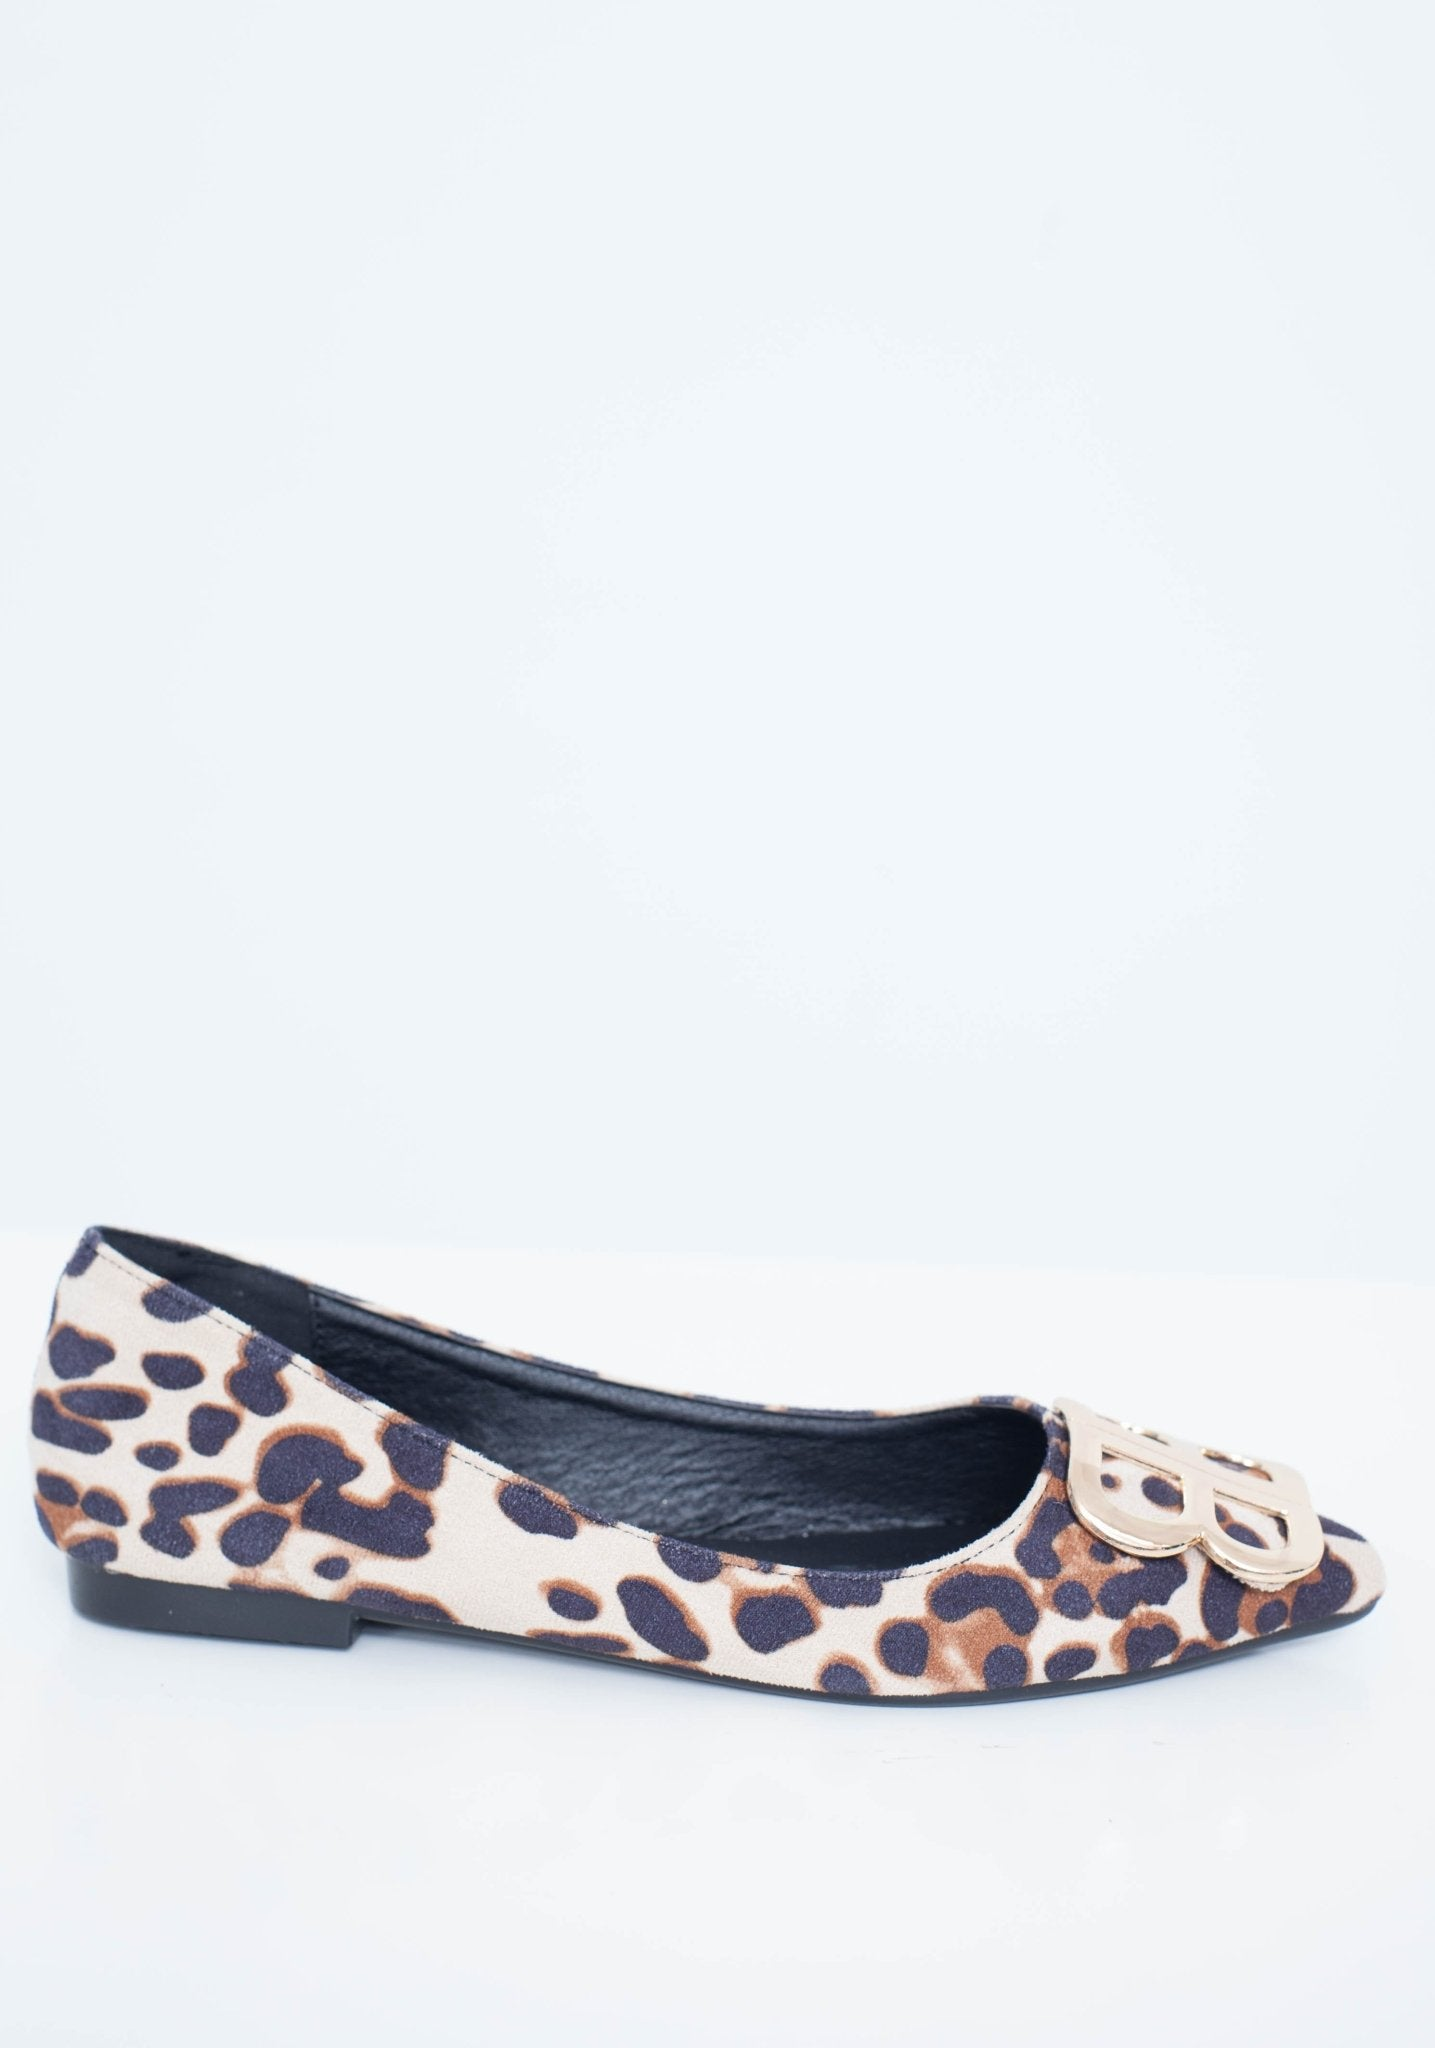 Blair Pointed Flats With Buckle In Leopard - The Walk in Wardrobe